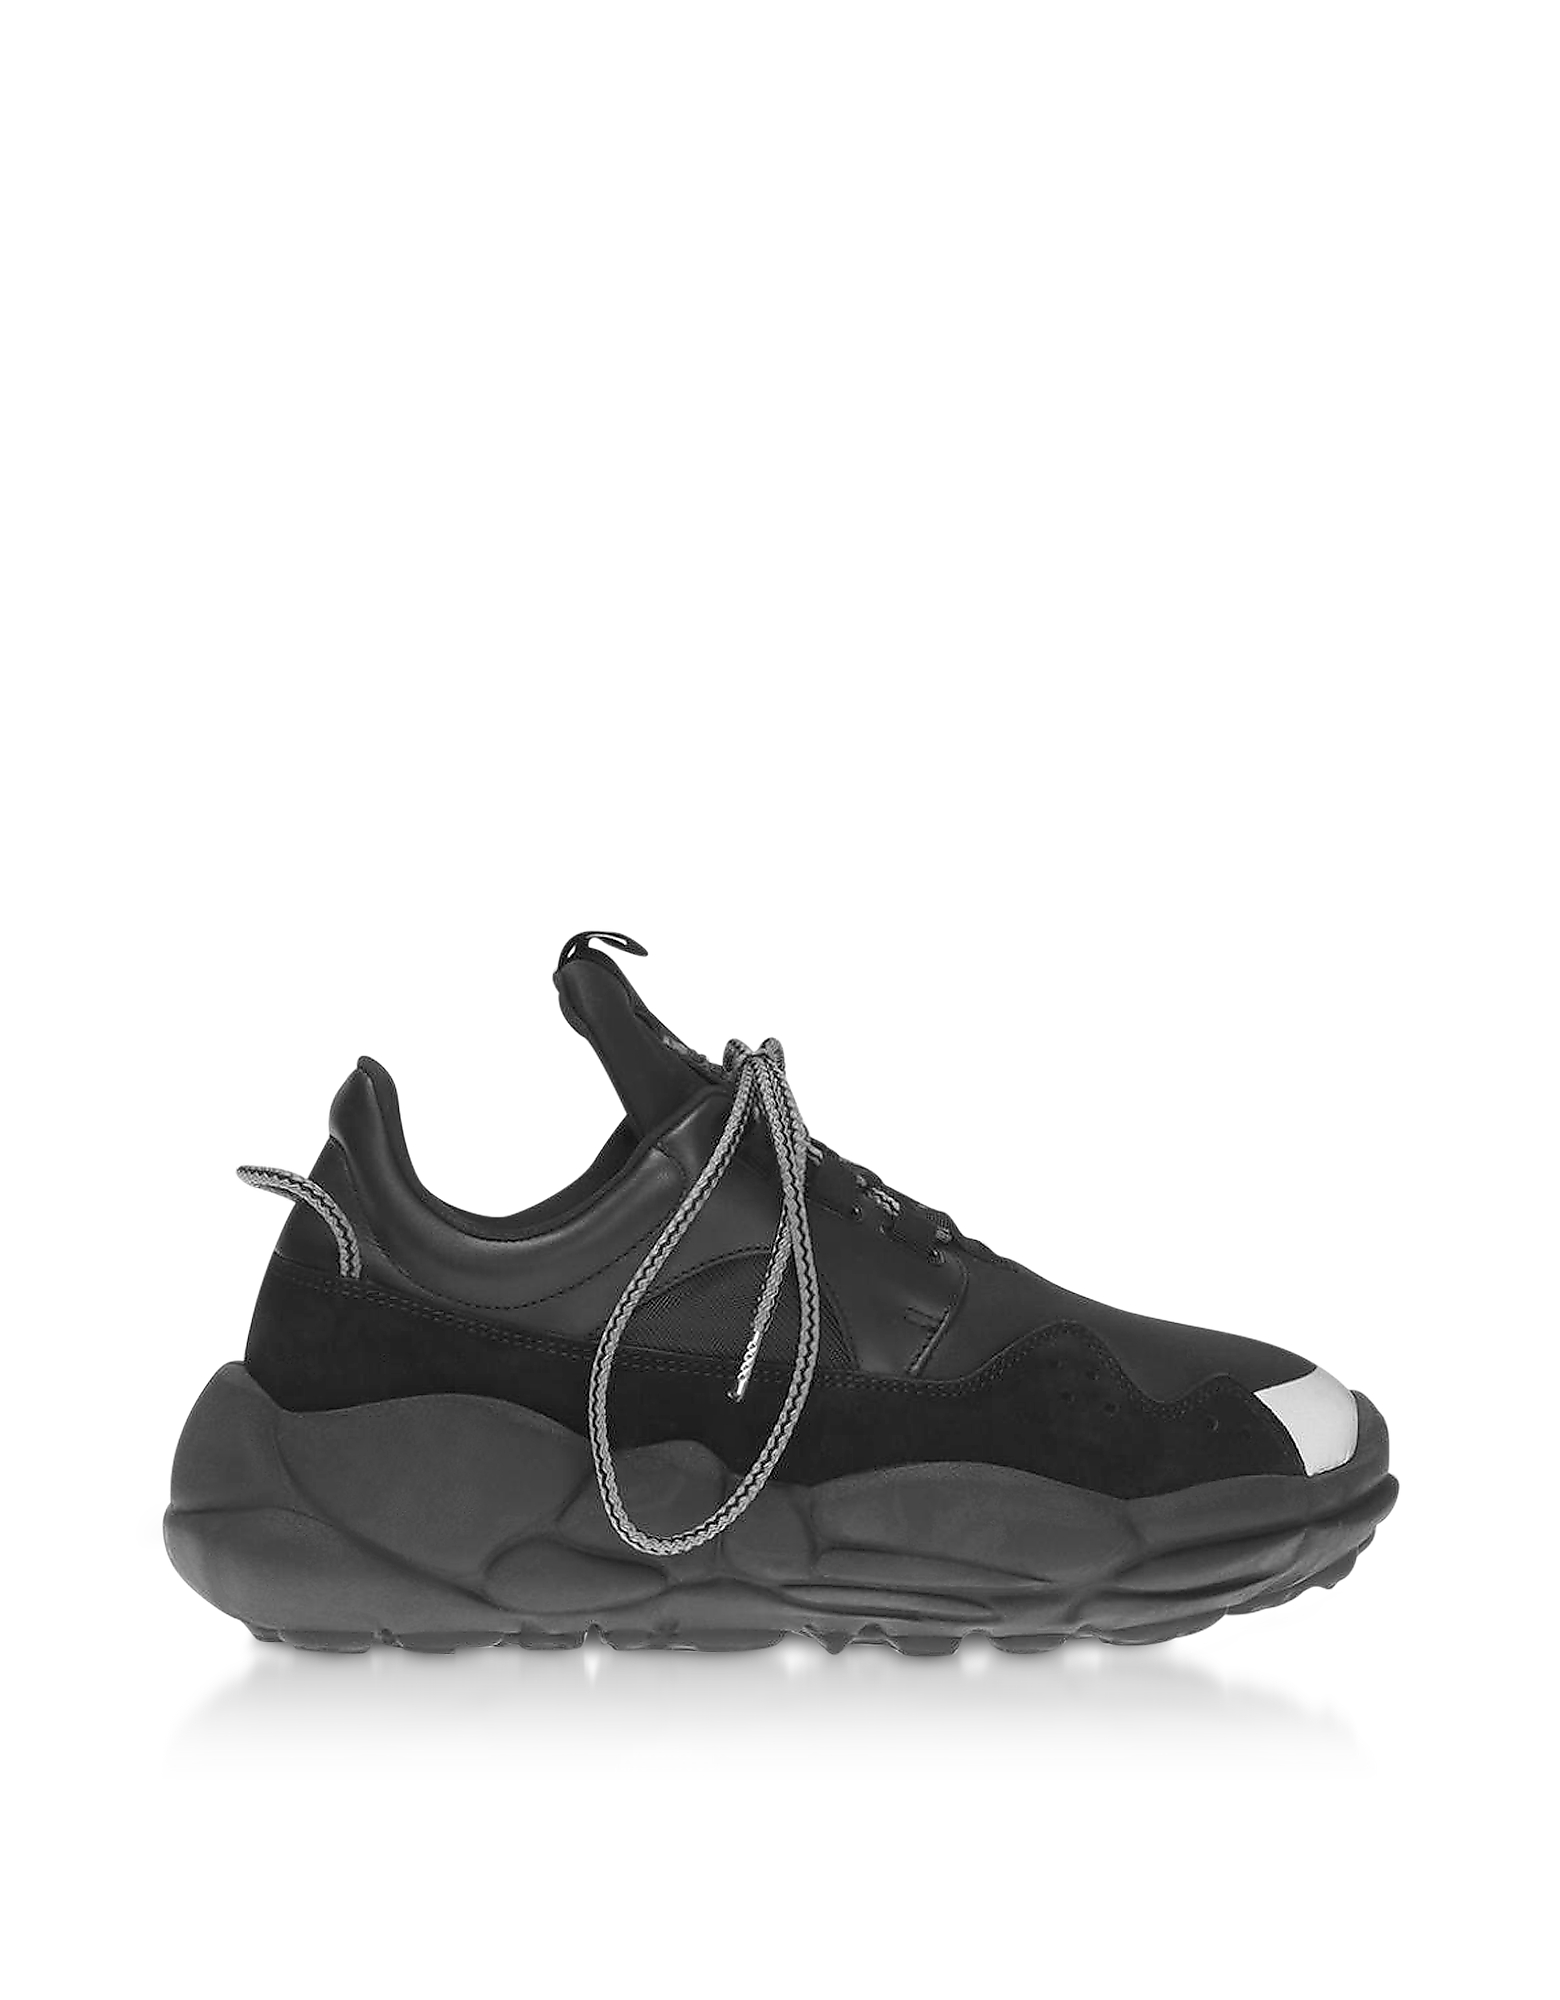 Anatomia Neoprene and Suede Runner Sneakers